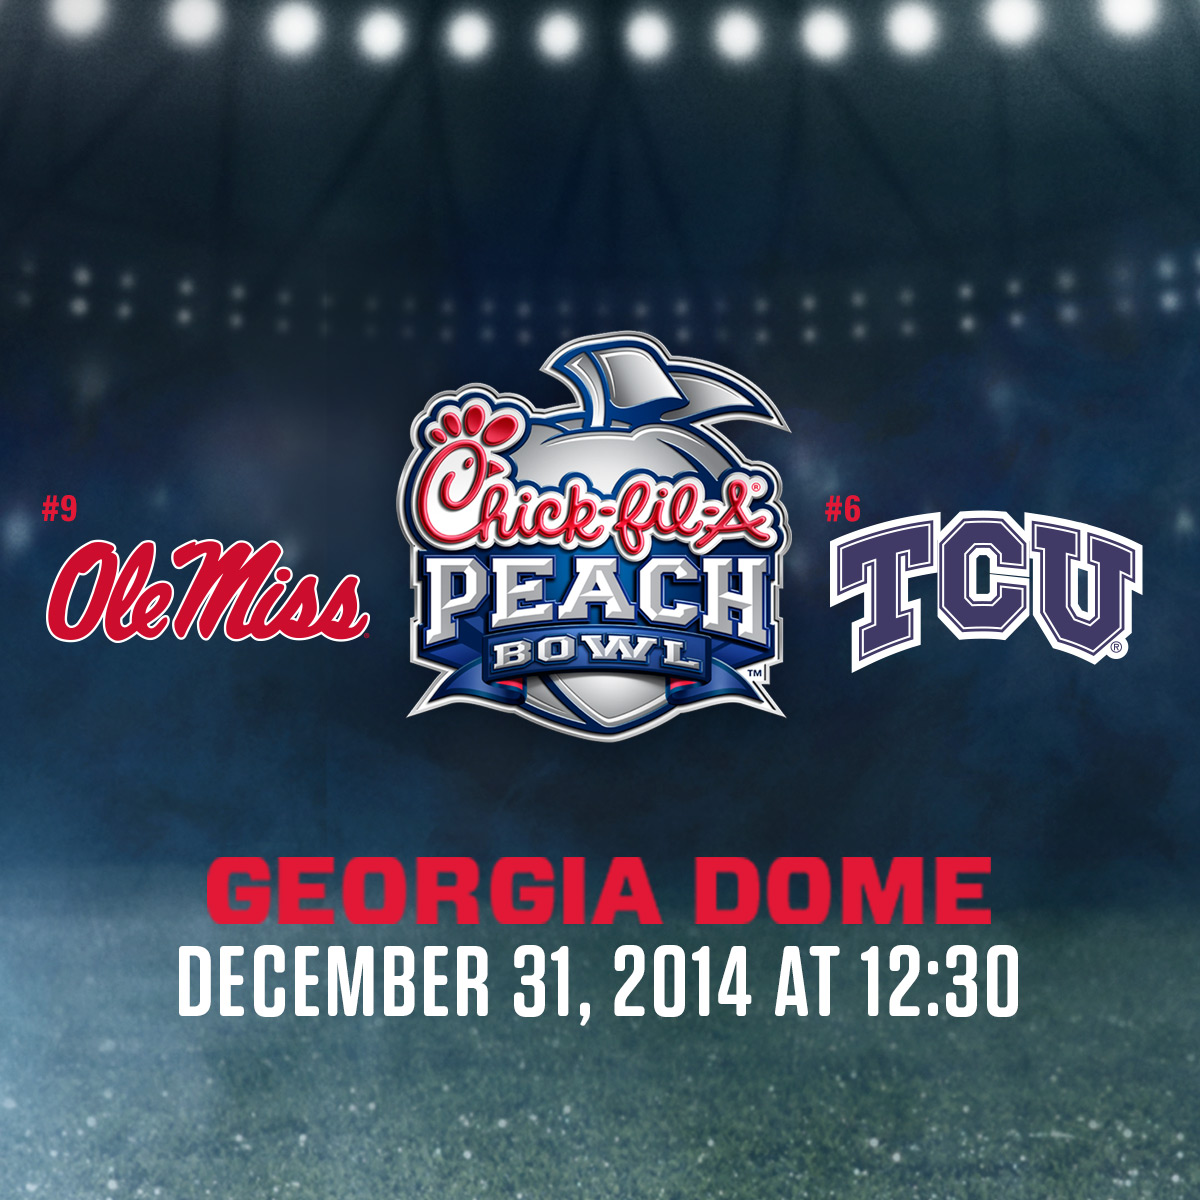 Peach bowl logo graphic